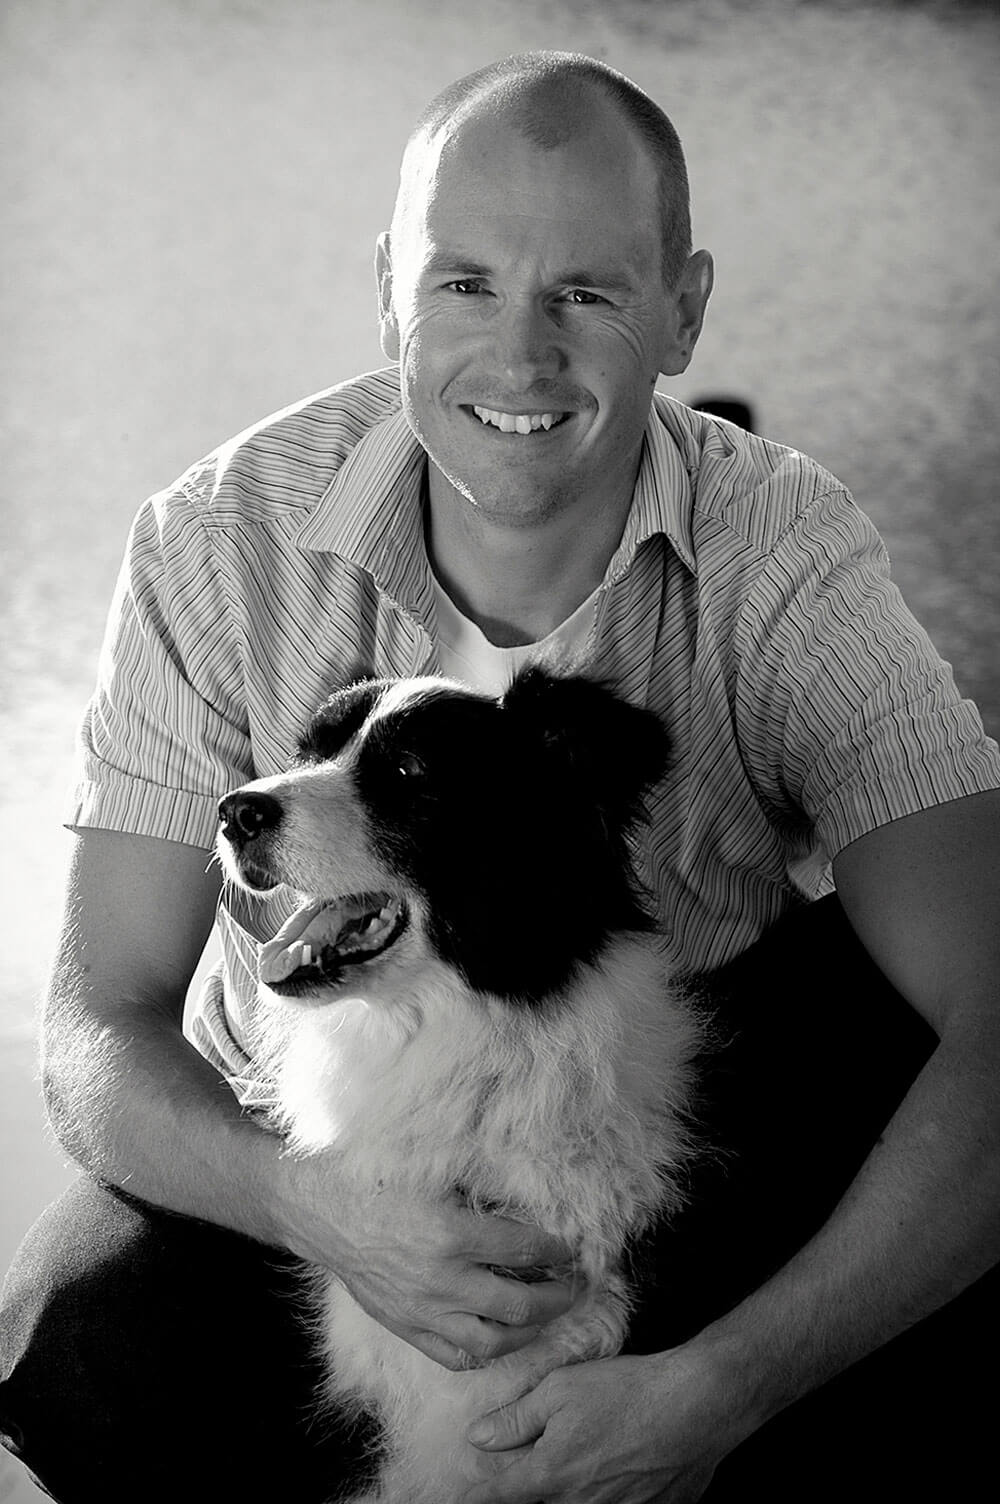 Portrait Photographer Jason embracing his dog